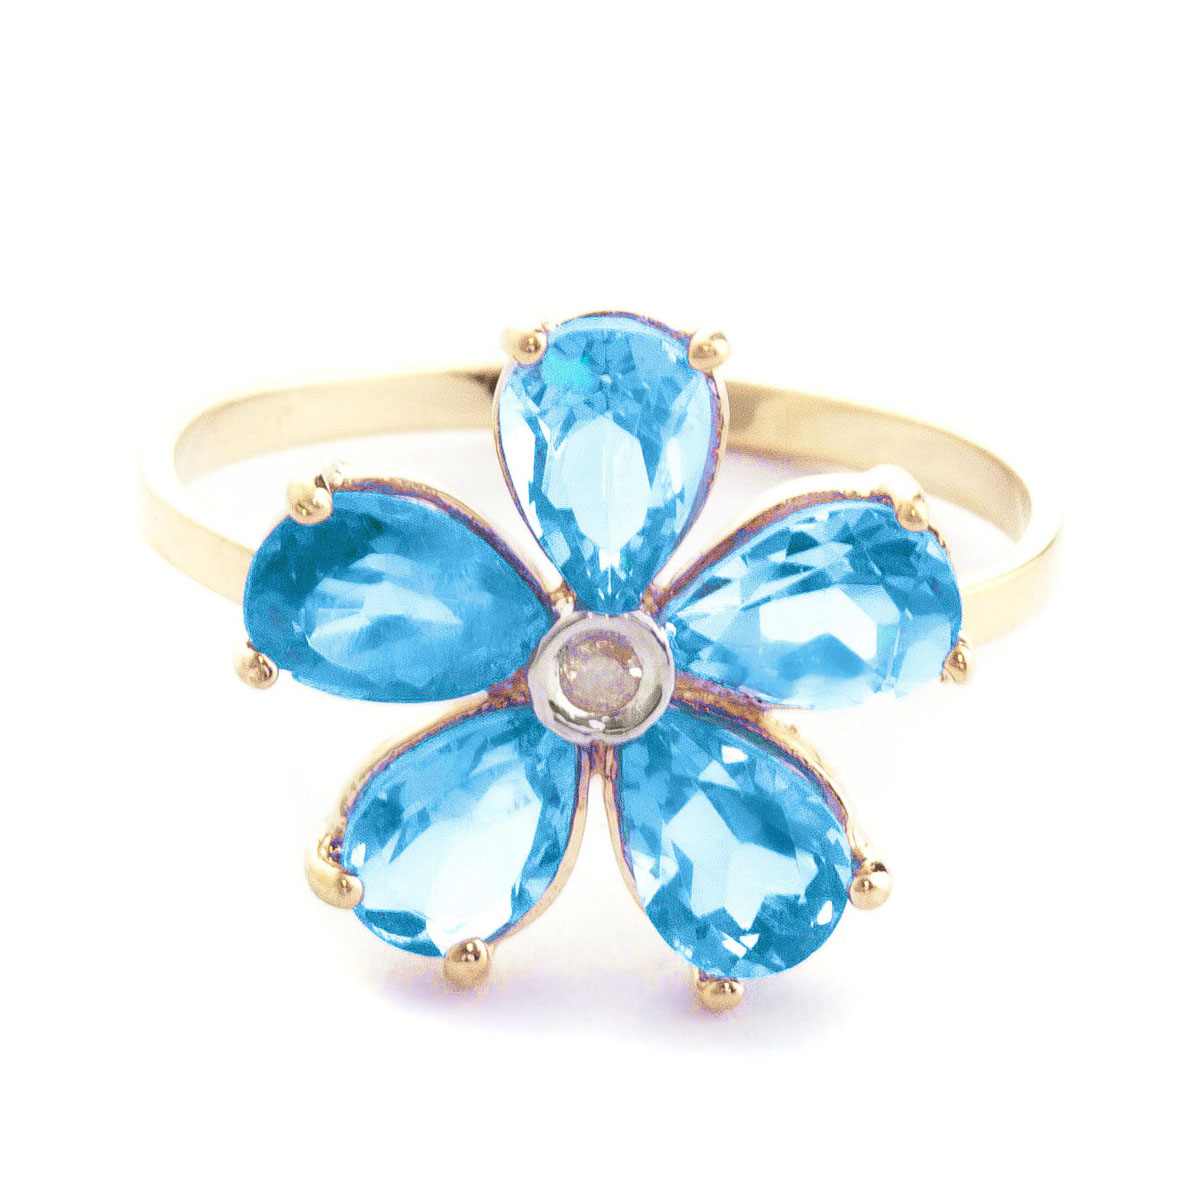 Blue Topaz & Diamond Five Petal Ring in 9ct Gold